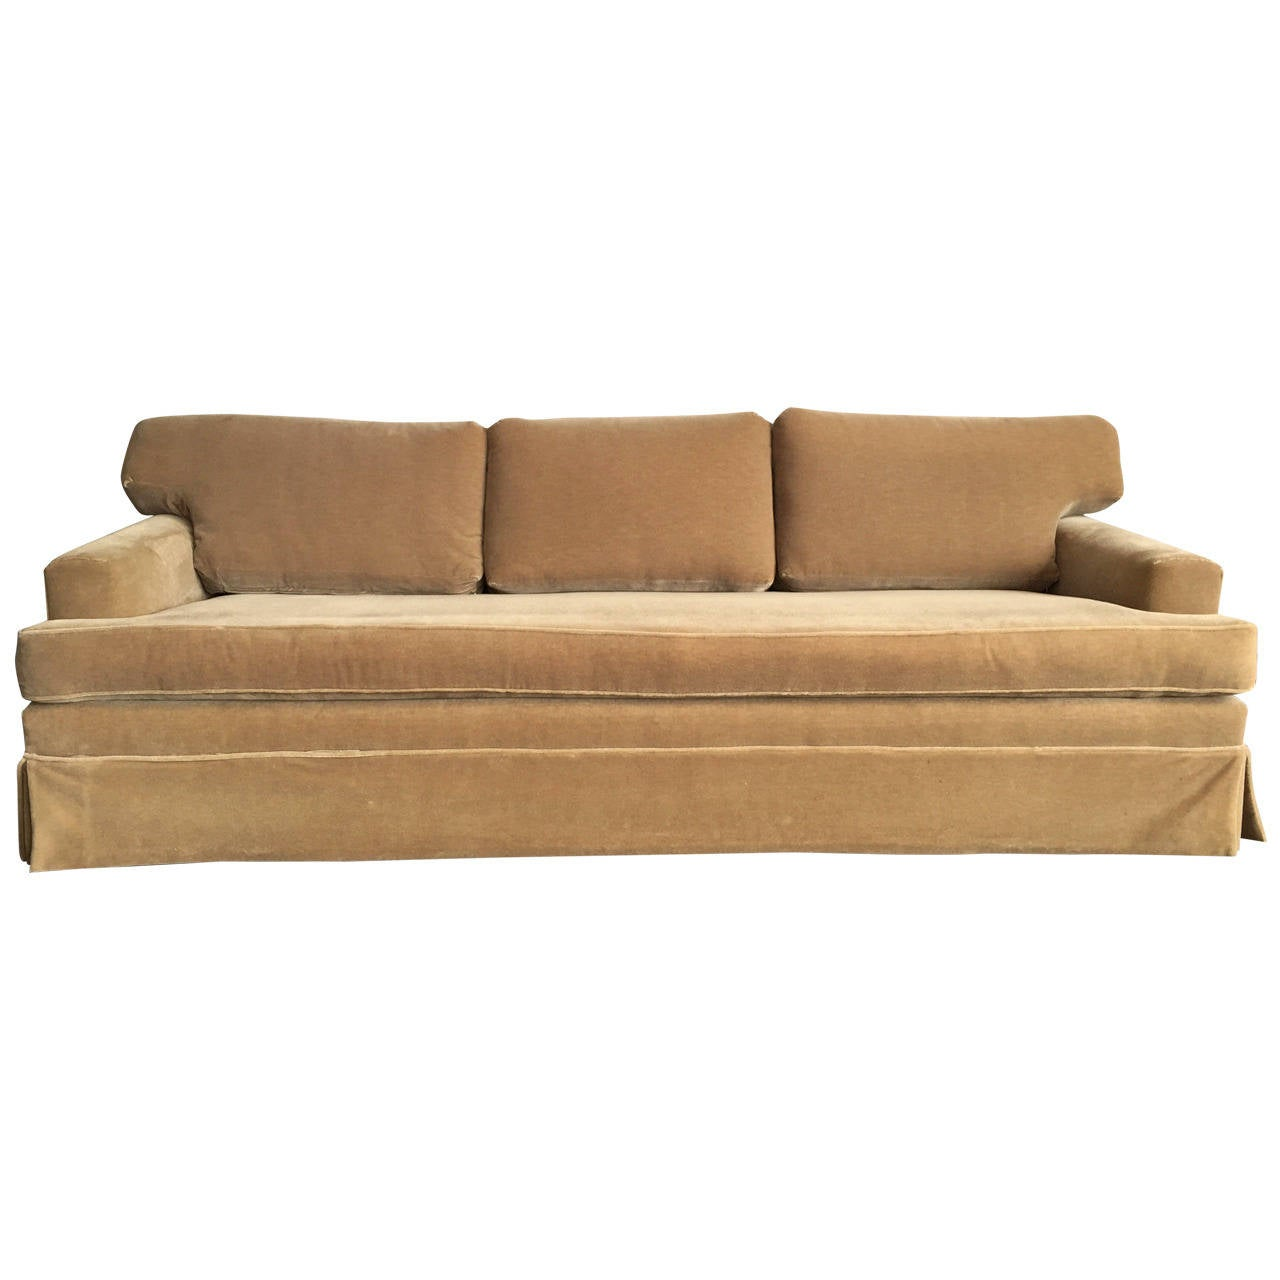 extra long classic jmf style mohair sofa at 1stdibs. Black Bedroom Furniture Sets. Home Design Ideas